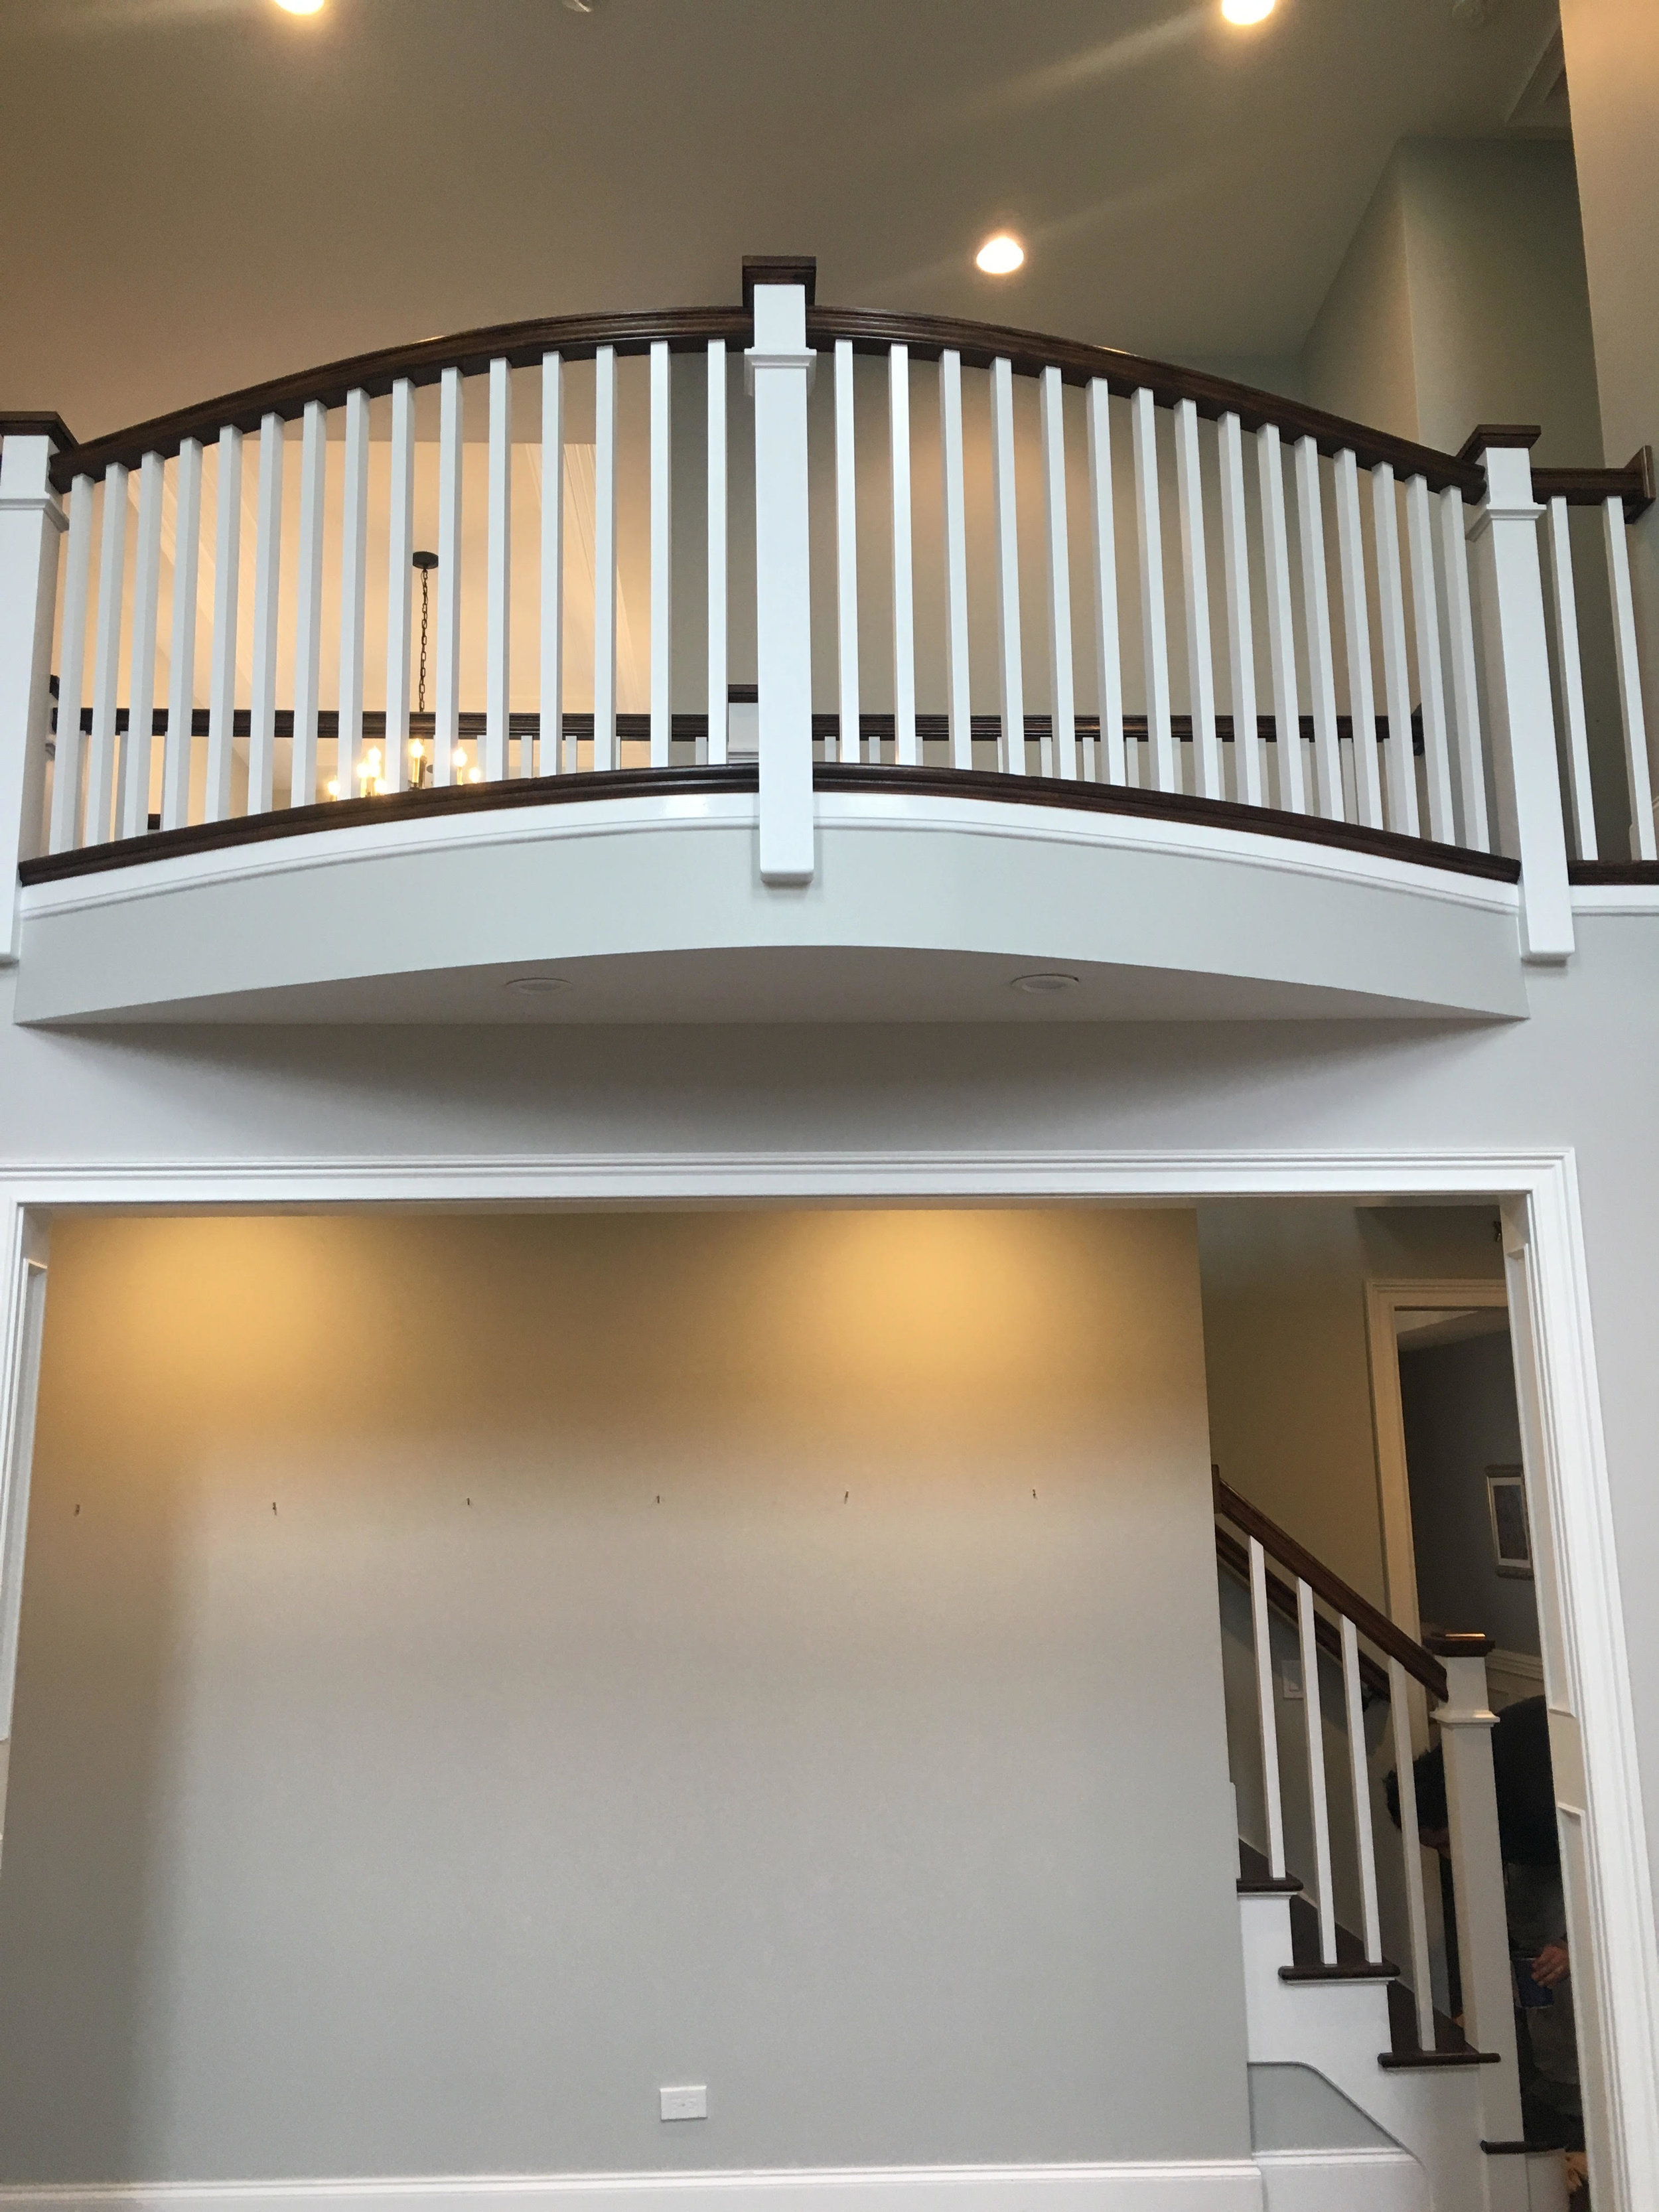 ARCHED BALCONY OVERLOOK REMODEL IN GLEN ELLYN IL.